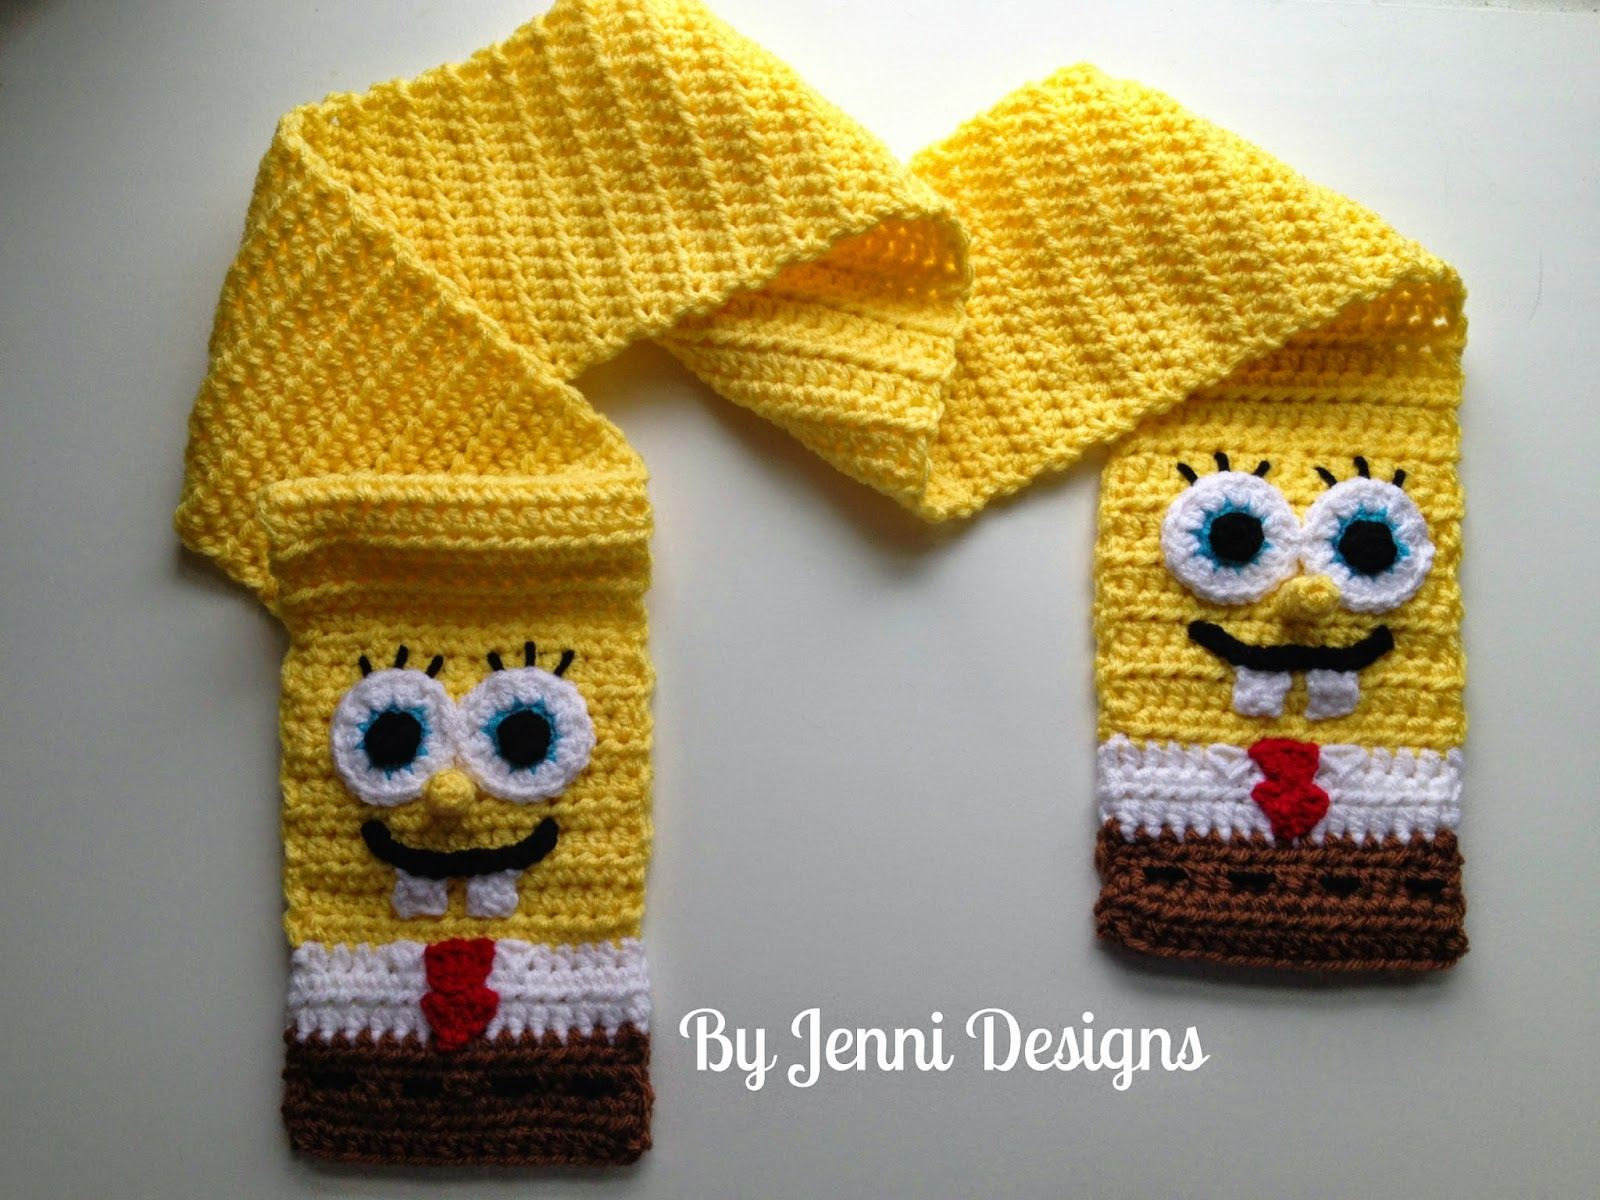 By jenni designs spongebob squarepants inspired scarf pattern by jenni designs spongebob squarepants inspired scarf pattern crochet kids scarffree dt1010fo